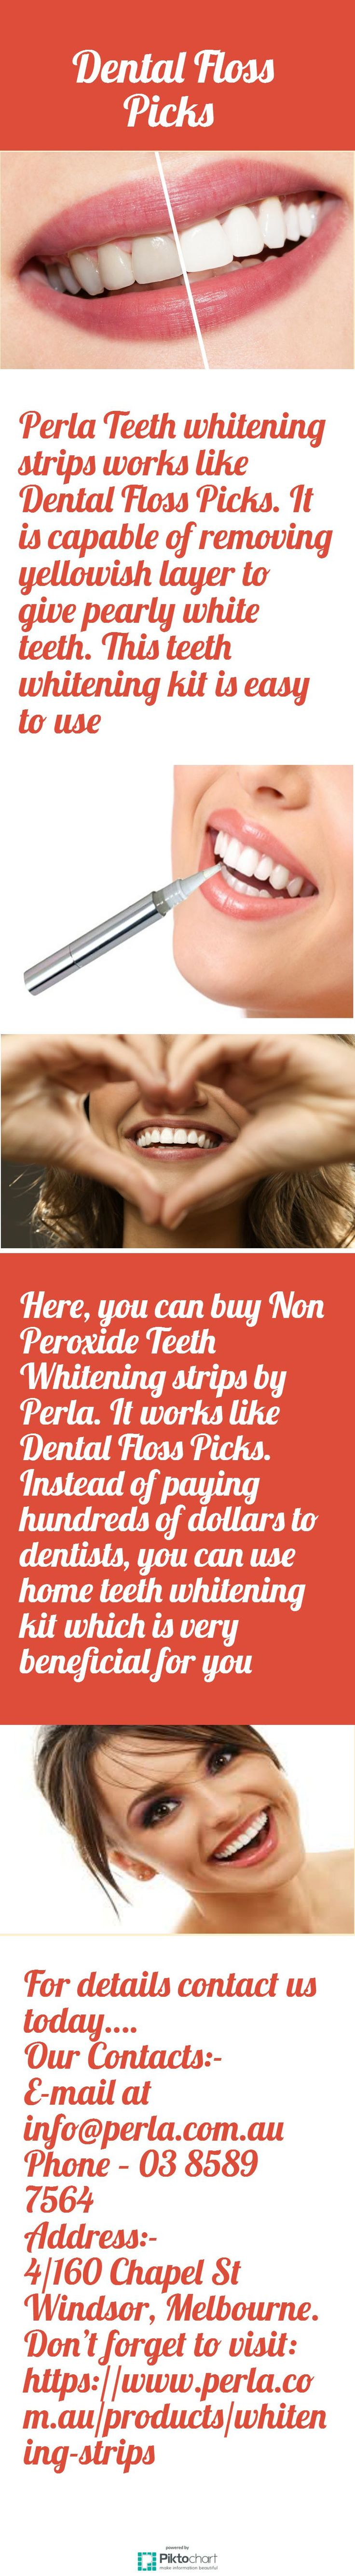 Perla Teeth whitening strips works like Dental Floss Picks. It is capable of removing yellowish layer to give pearly white teeth. This teeth whitening kit is easy to use. To buy it online, visit our website:  https://www.perla.com.au/products/whitening-strips